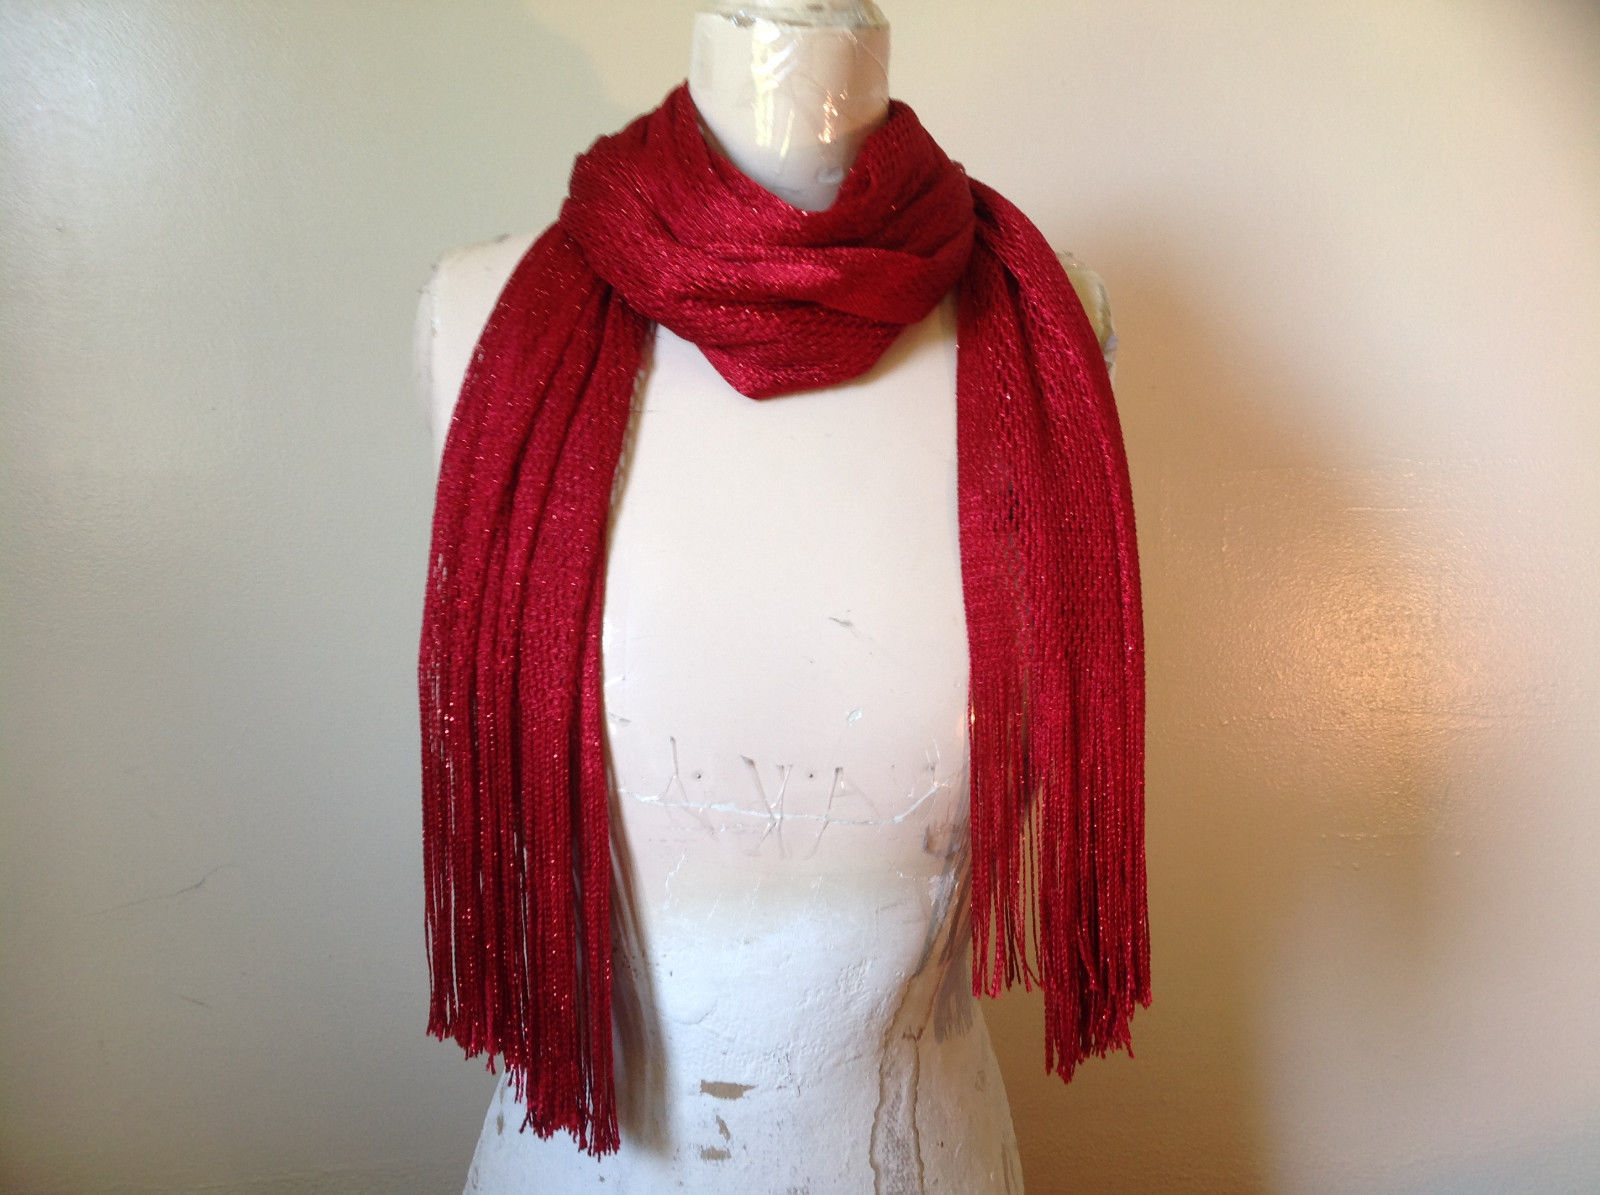 Dazzling Red Net Knit Shiny Fashion Scarf by Fashion Scarf Tasseled Stretchy